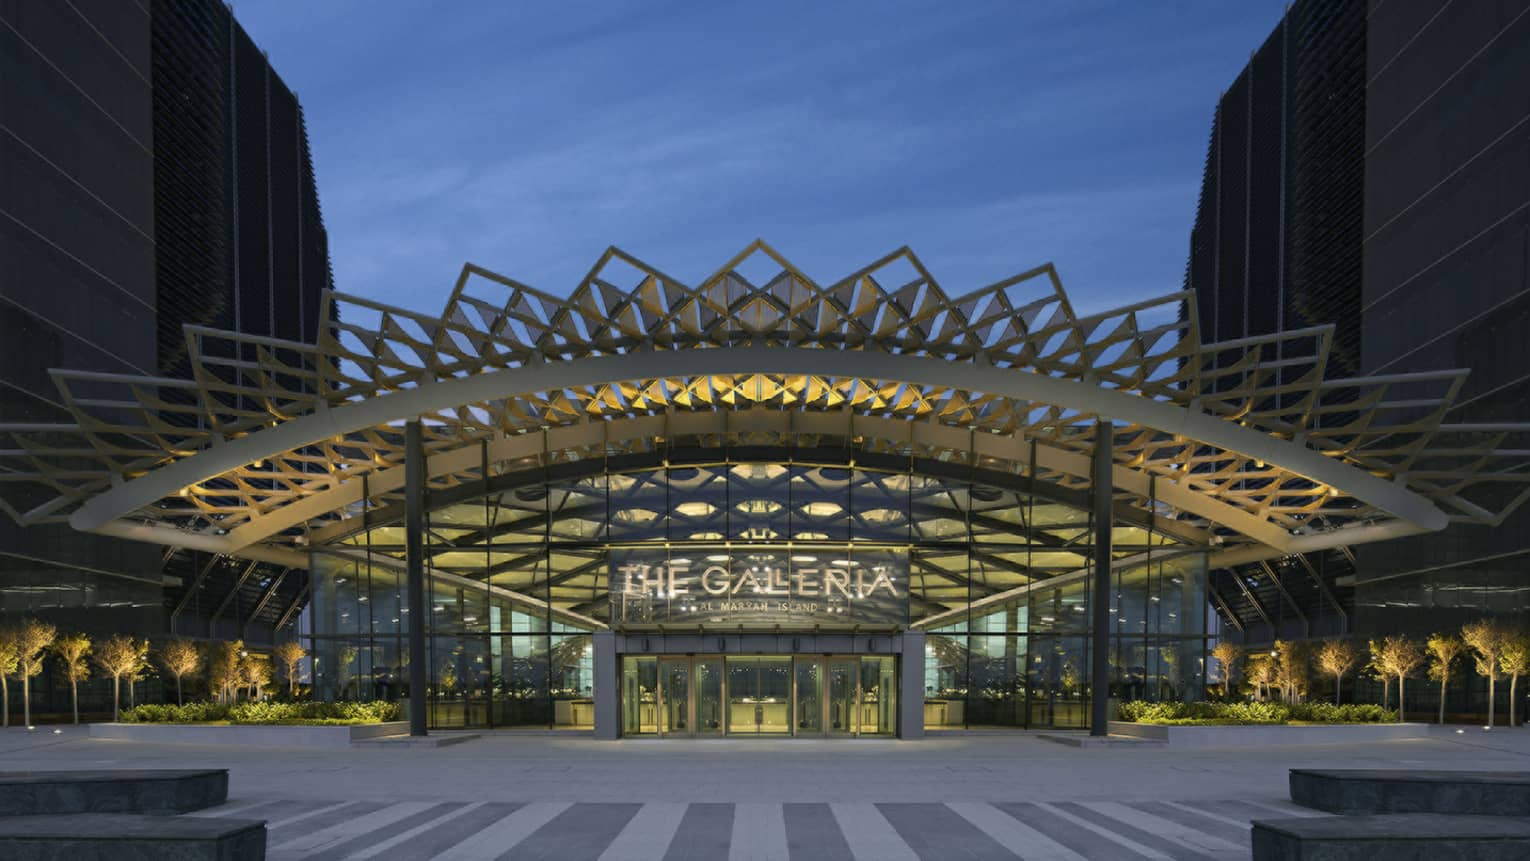 Galleria Mall entrance with sign and exterior with elaborate modern awning at dusk